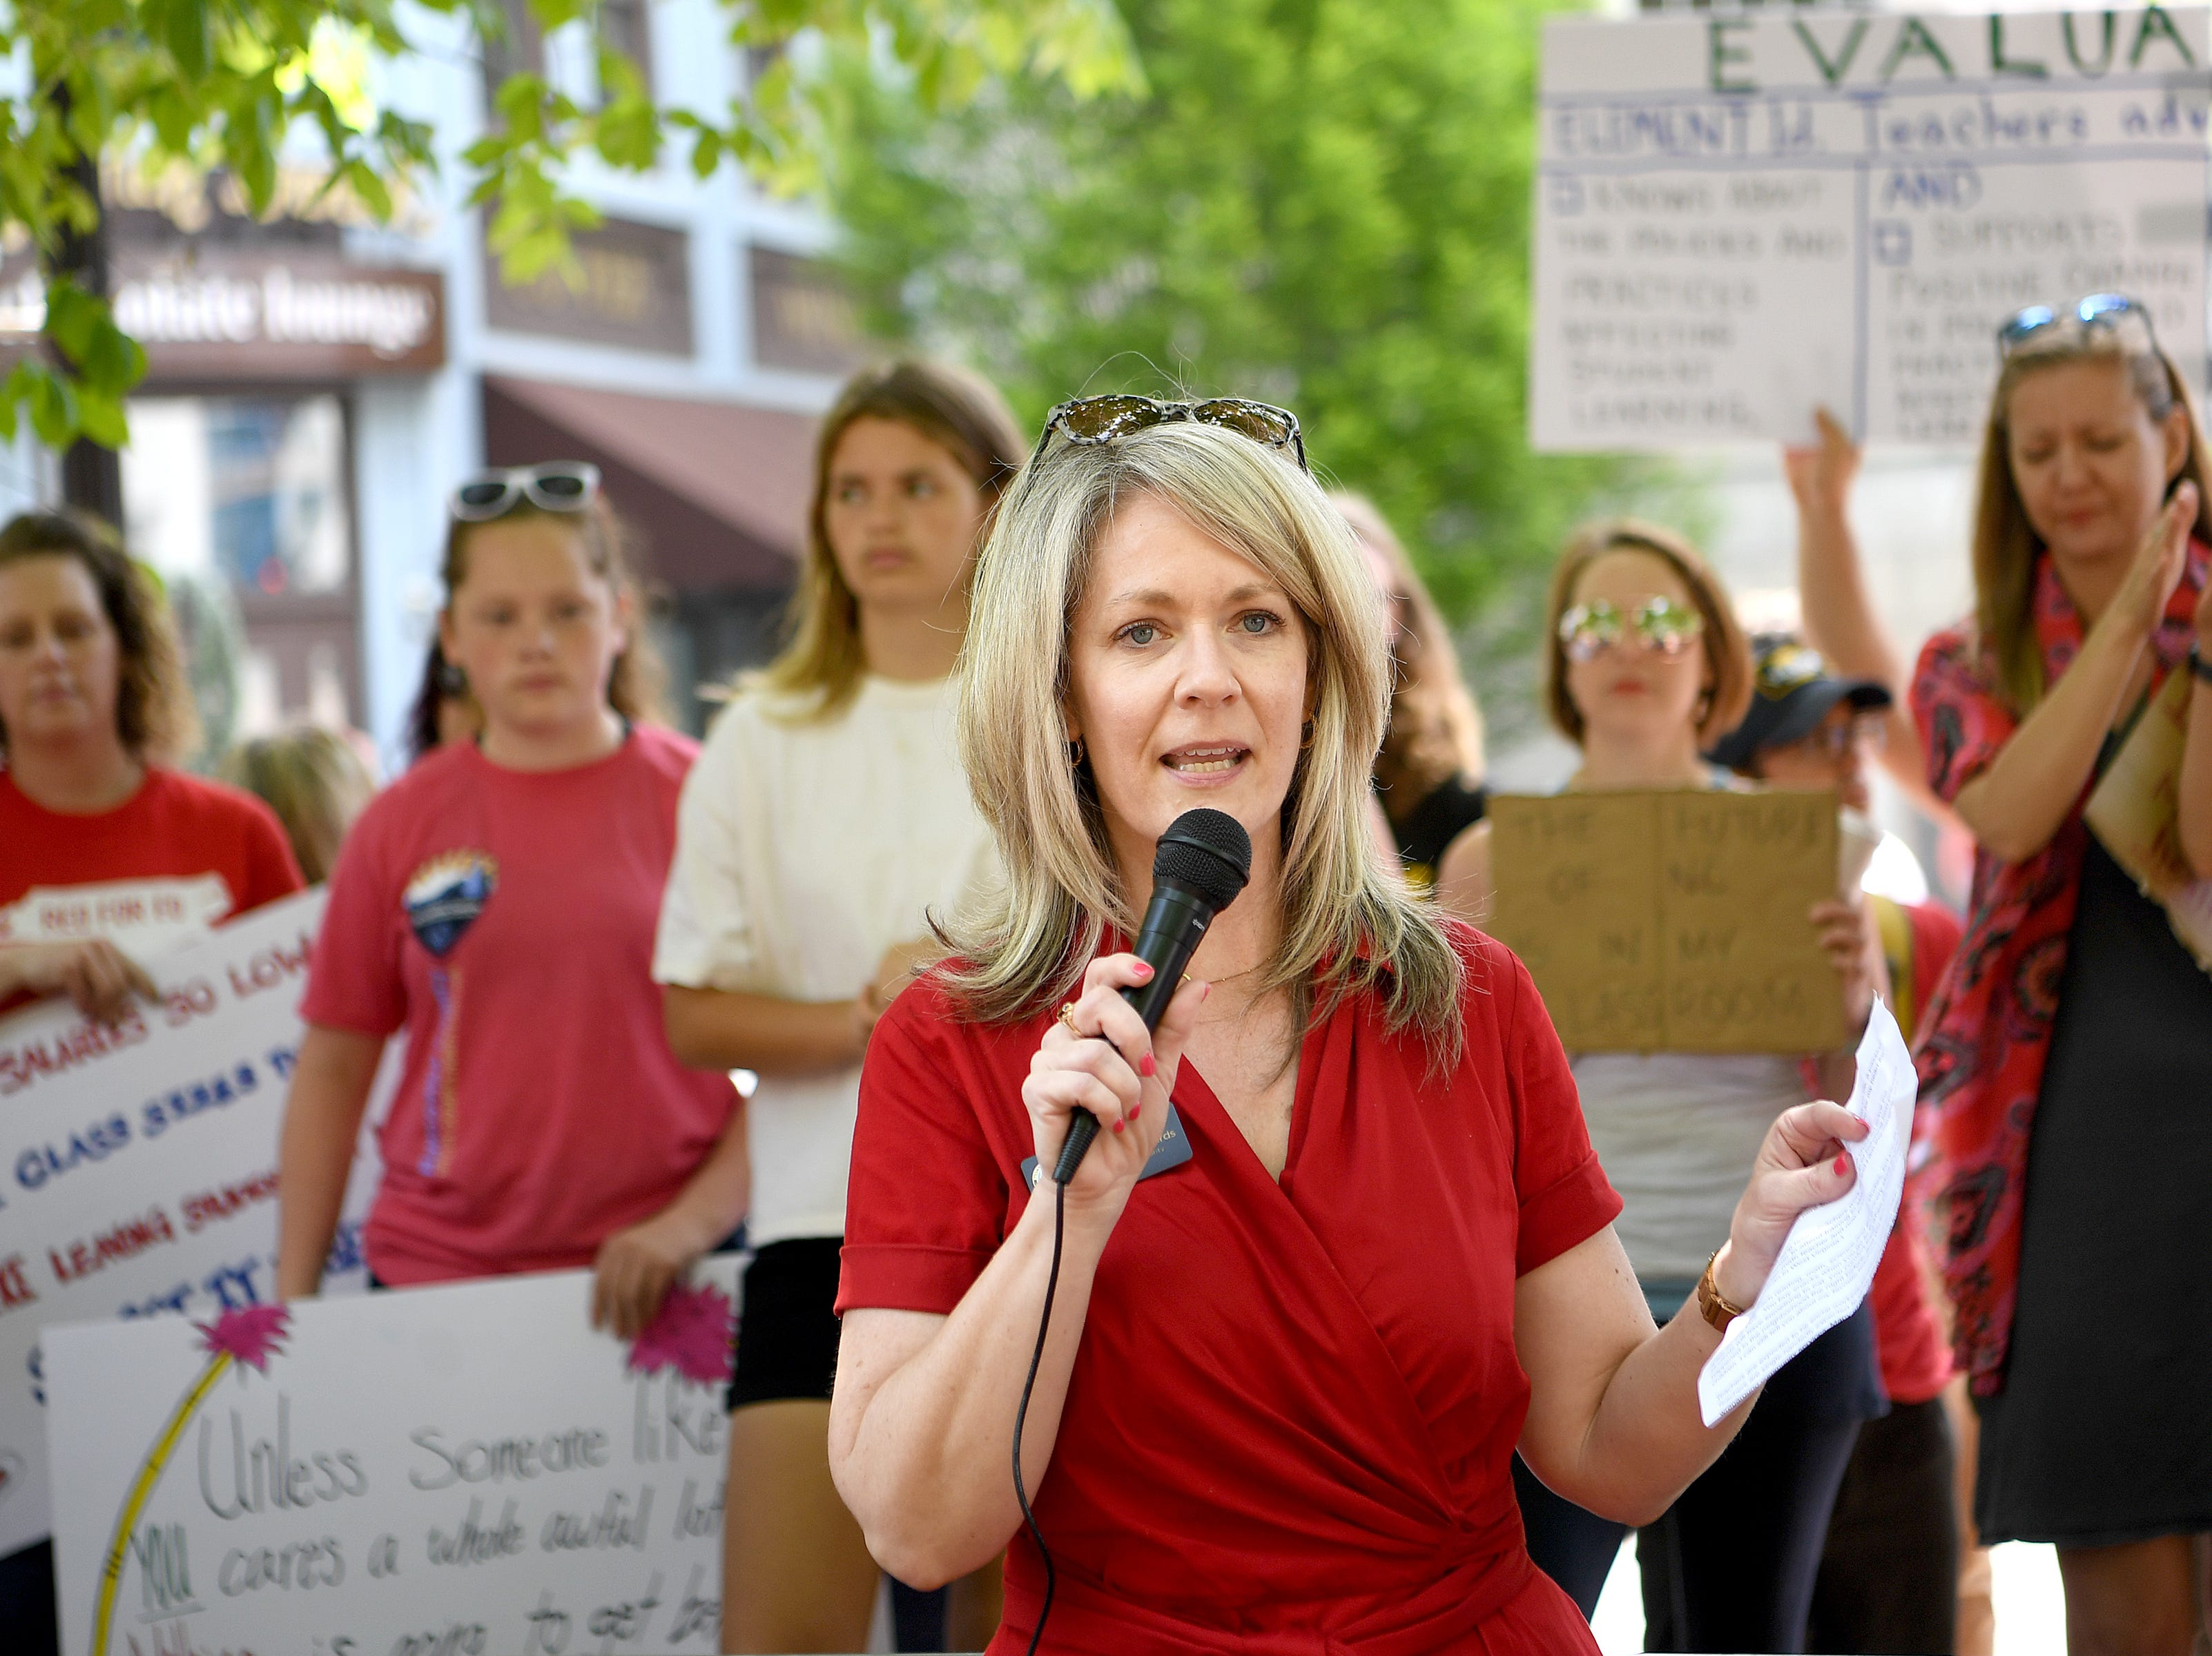 Buncombe County commissioner Amanda Edwards speaks to the crowd during the Asheville rally for public education at the Vance monument on May 1, 2019. The rally coincided with the NC Association of EducatorsÕ Day of Action in Raleigh.